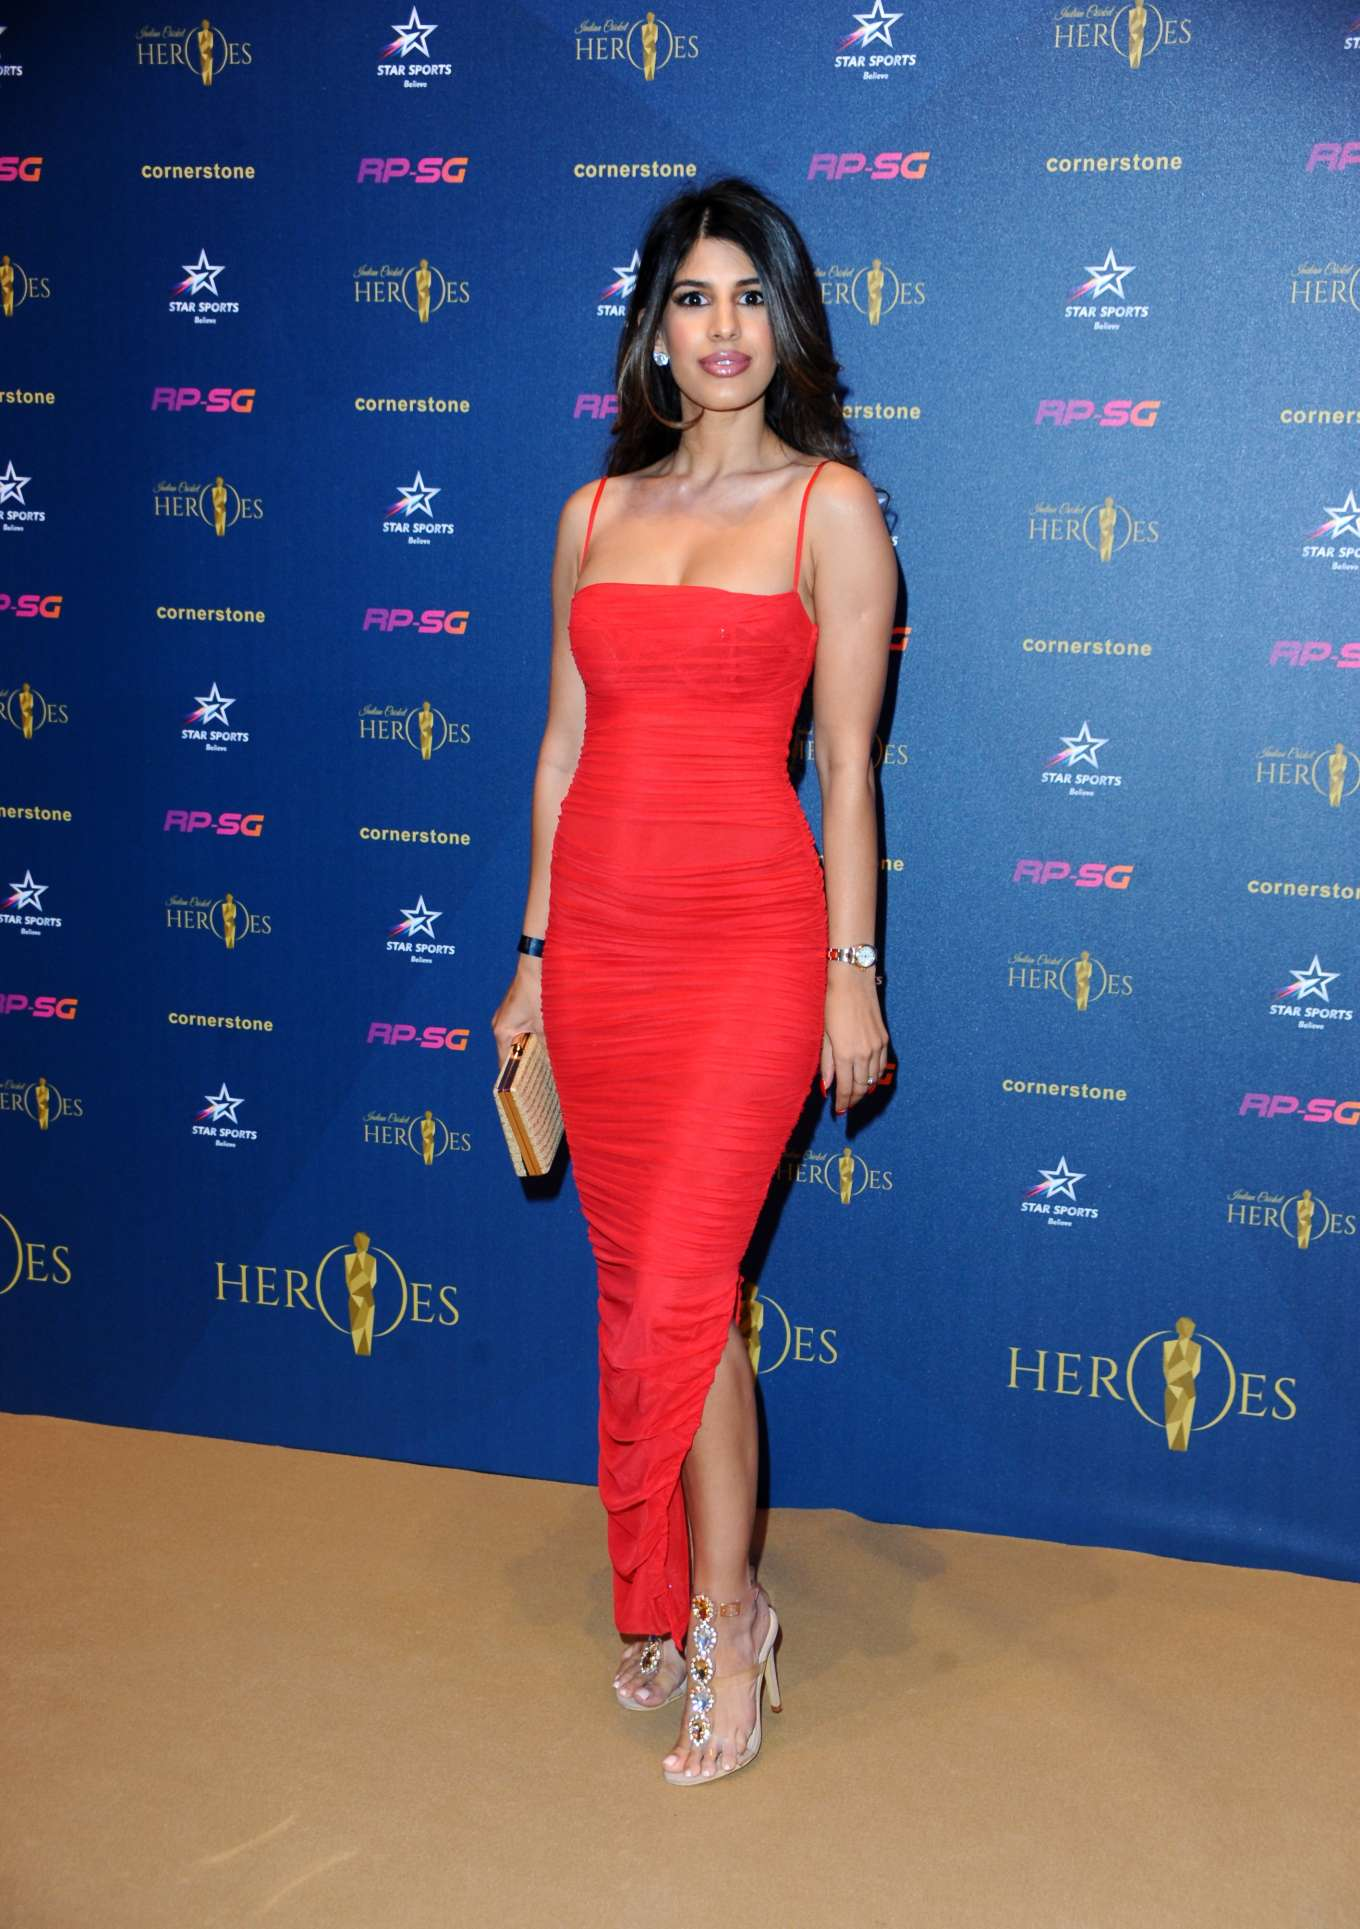 Jasmin Walia 2019 : Jasmin Walia: Indian Cricket Heroes Awards 2019-05